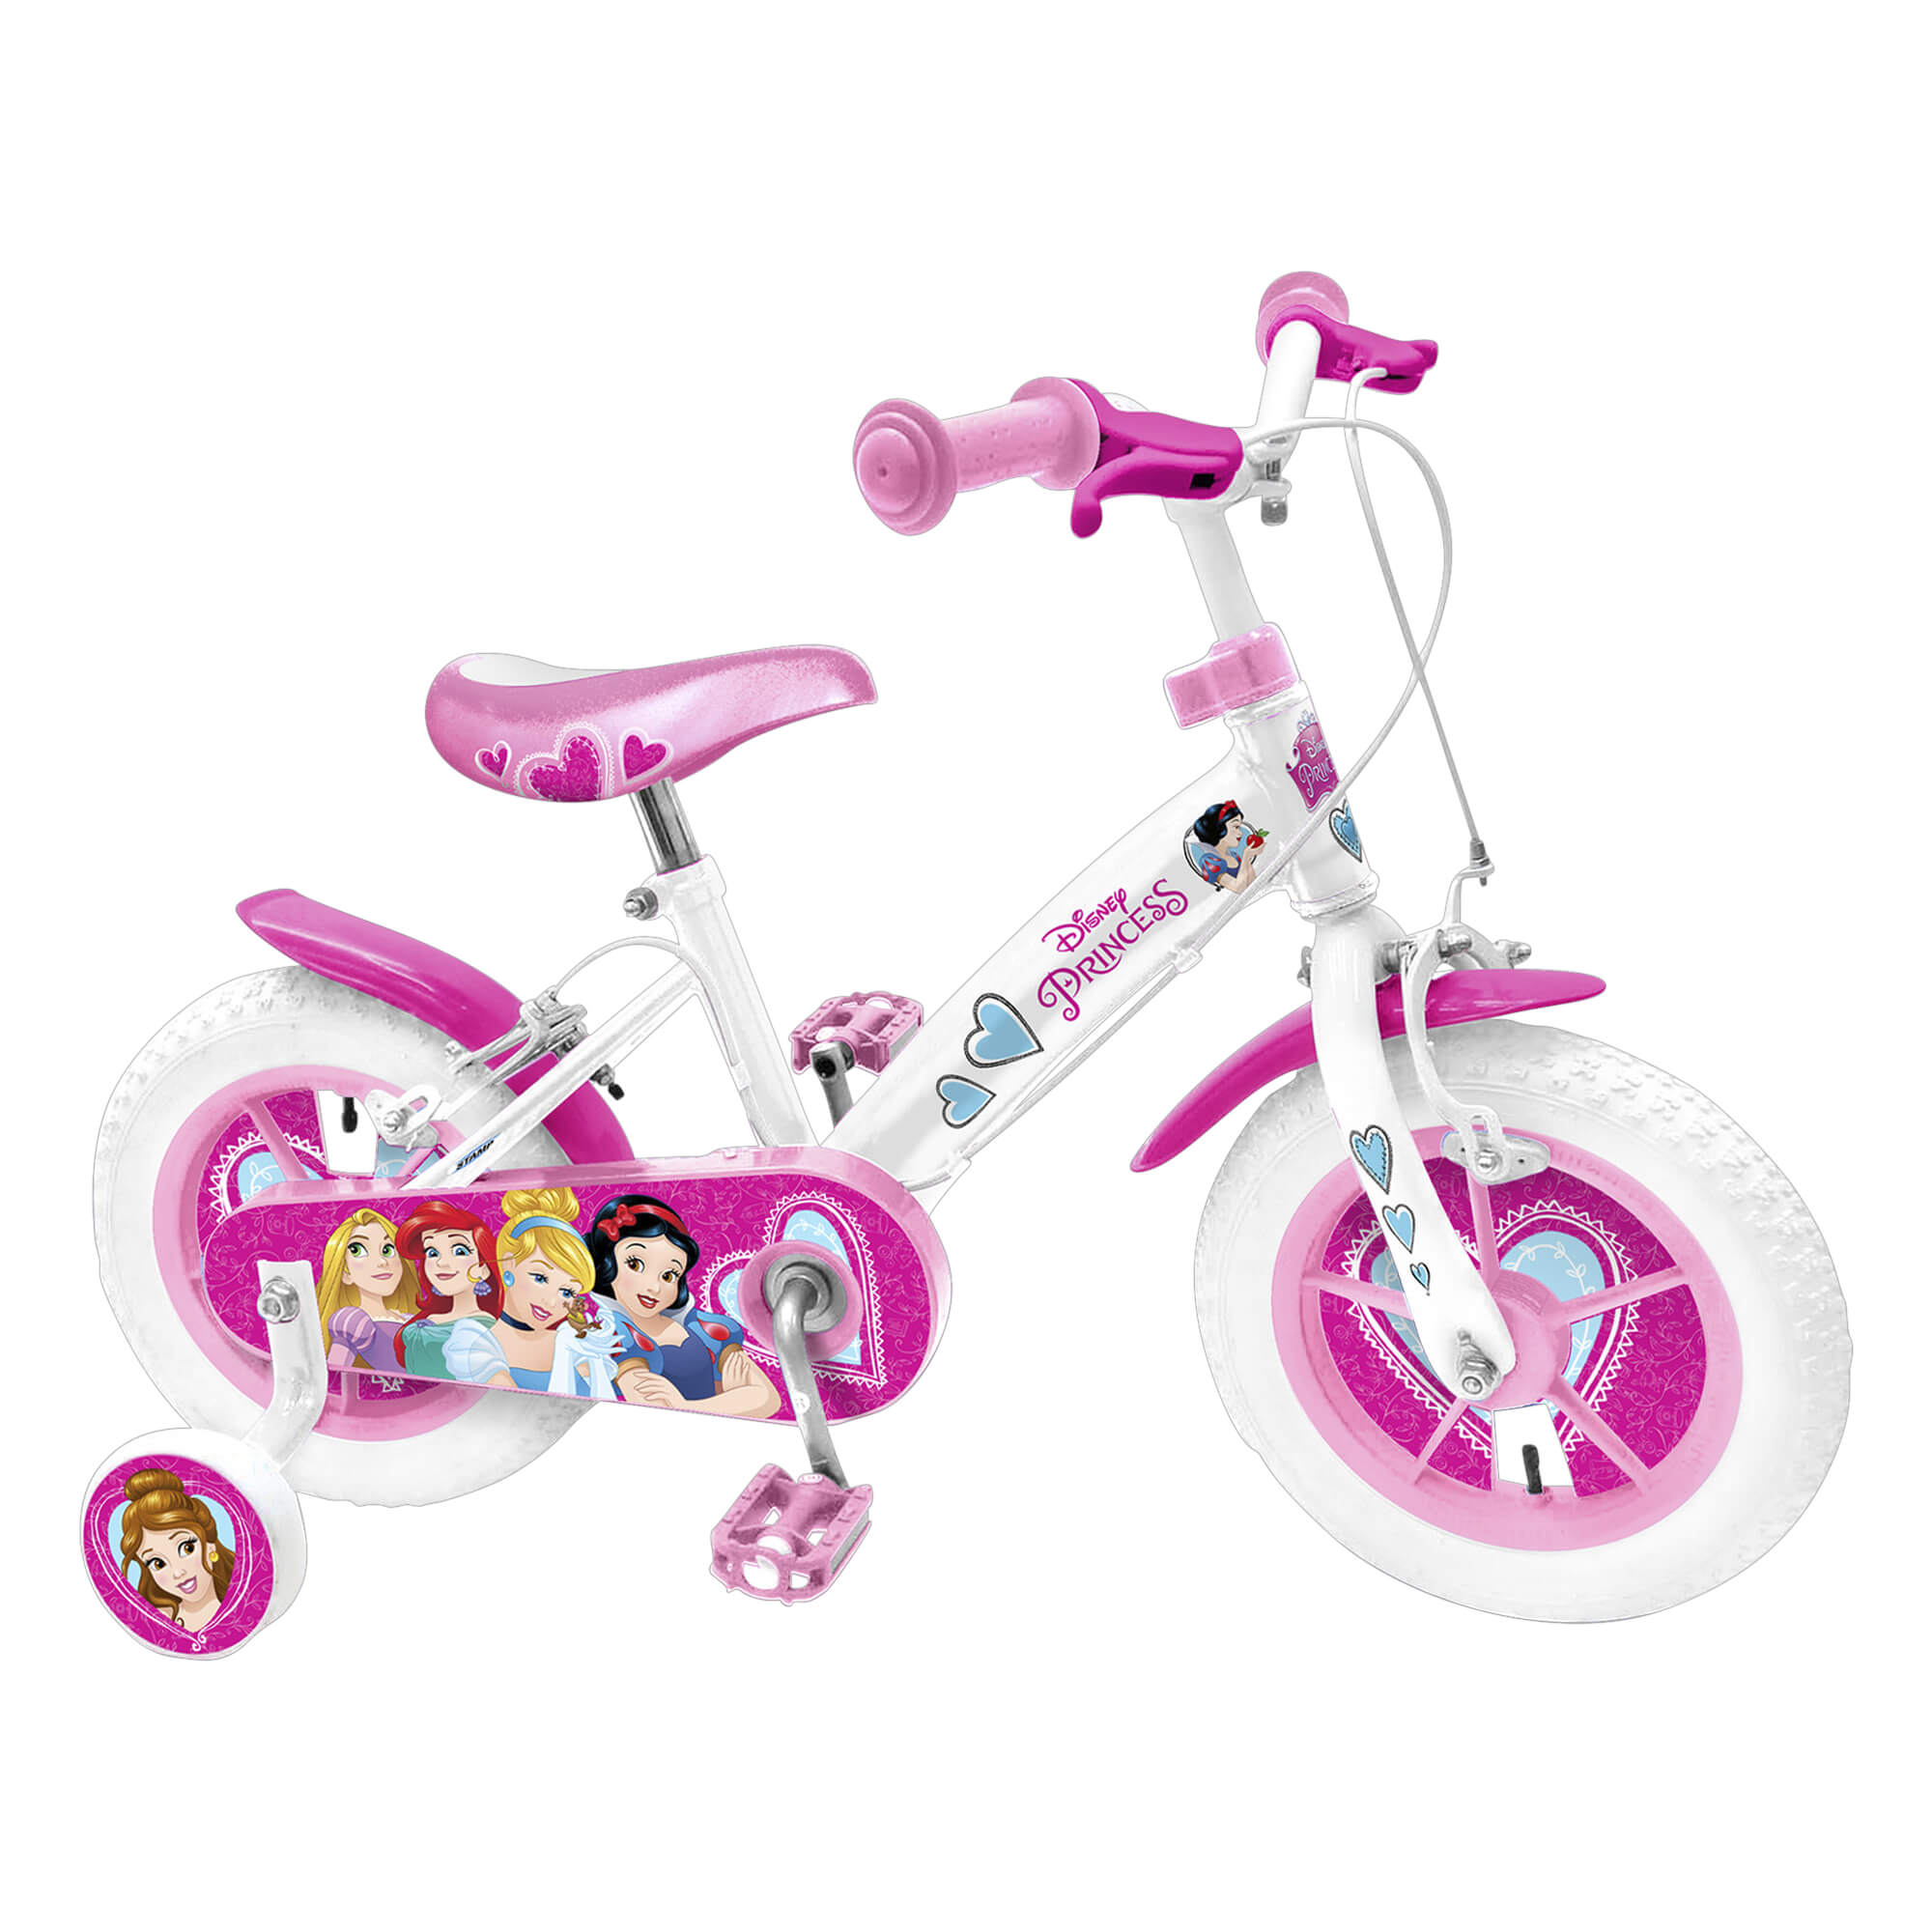 Bicicleta copii Disney Princess imagine